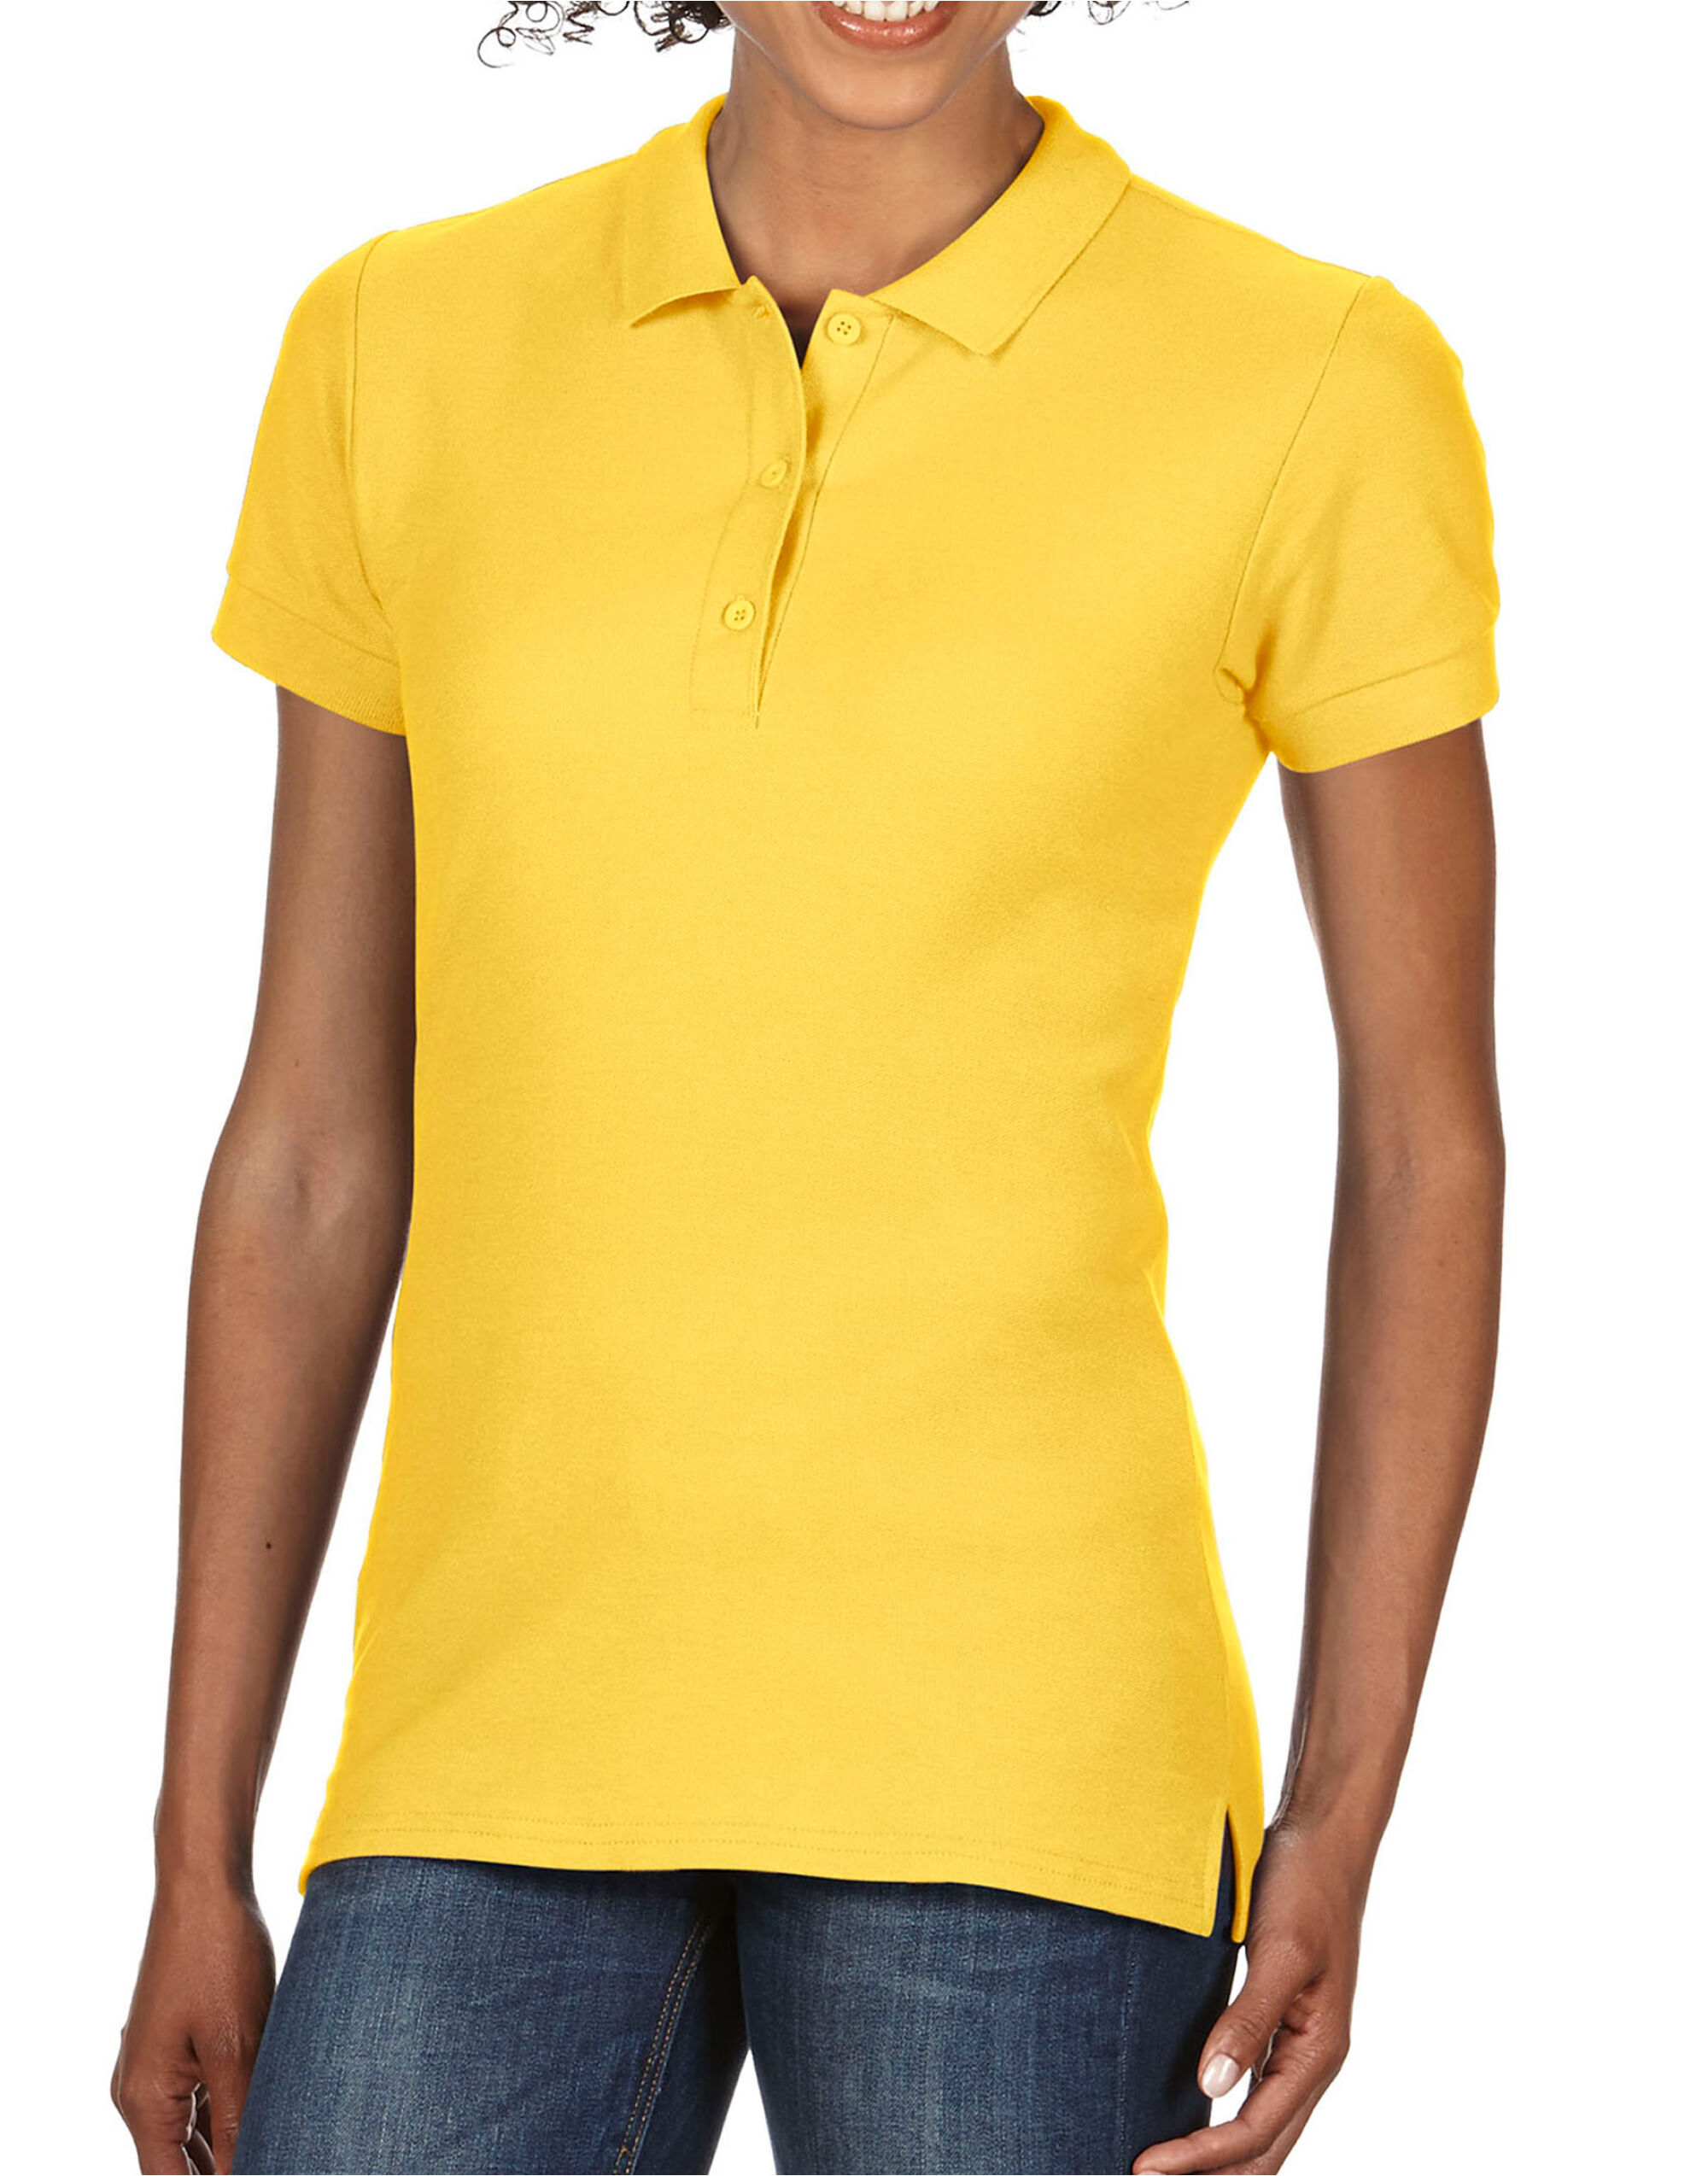 Premium Cotton Ladies Sport Shirt